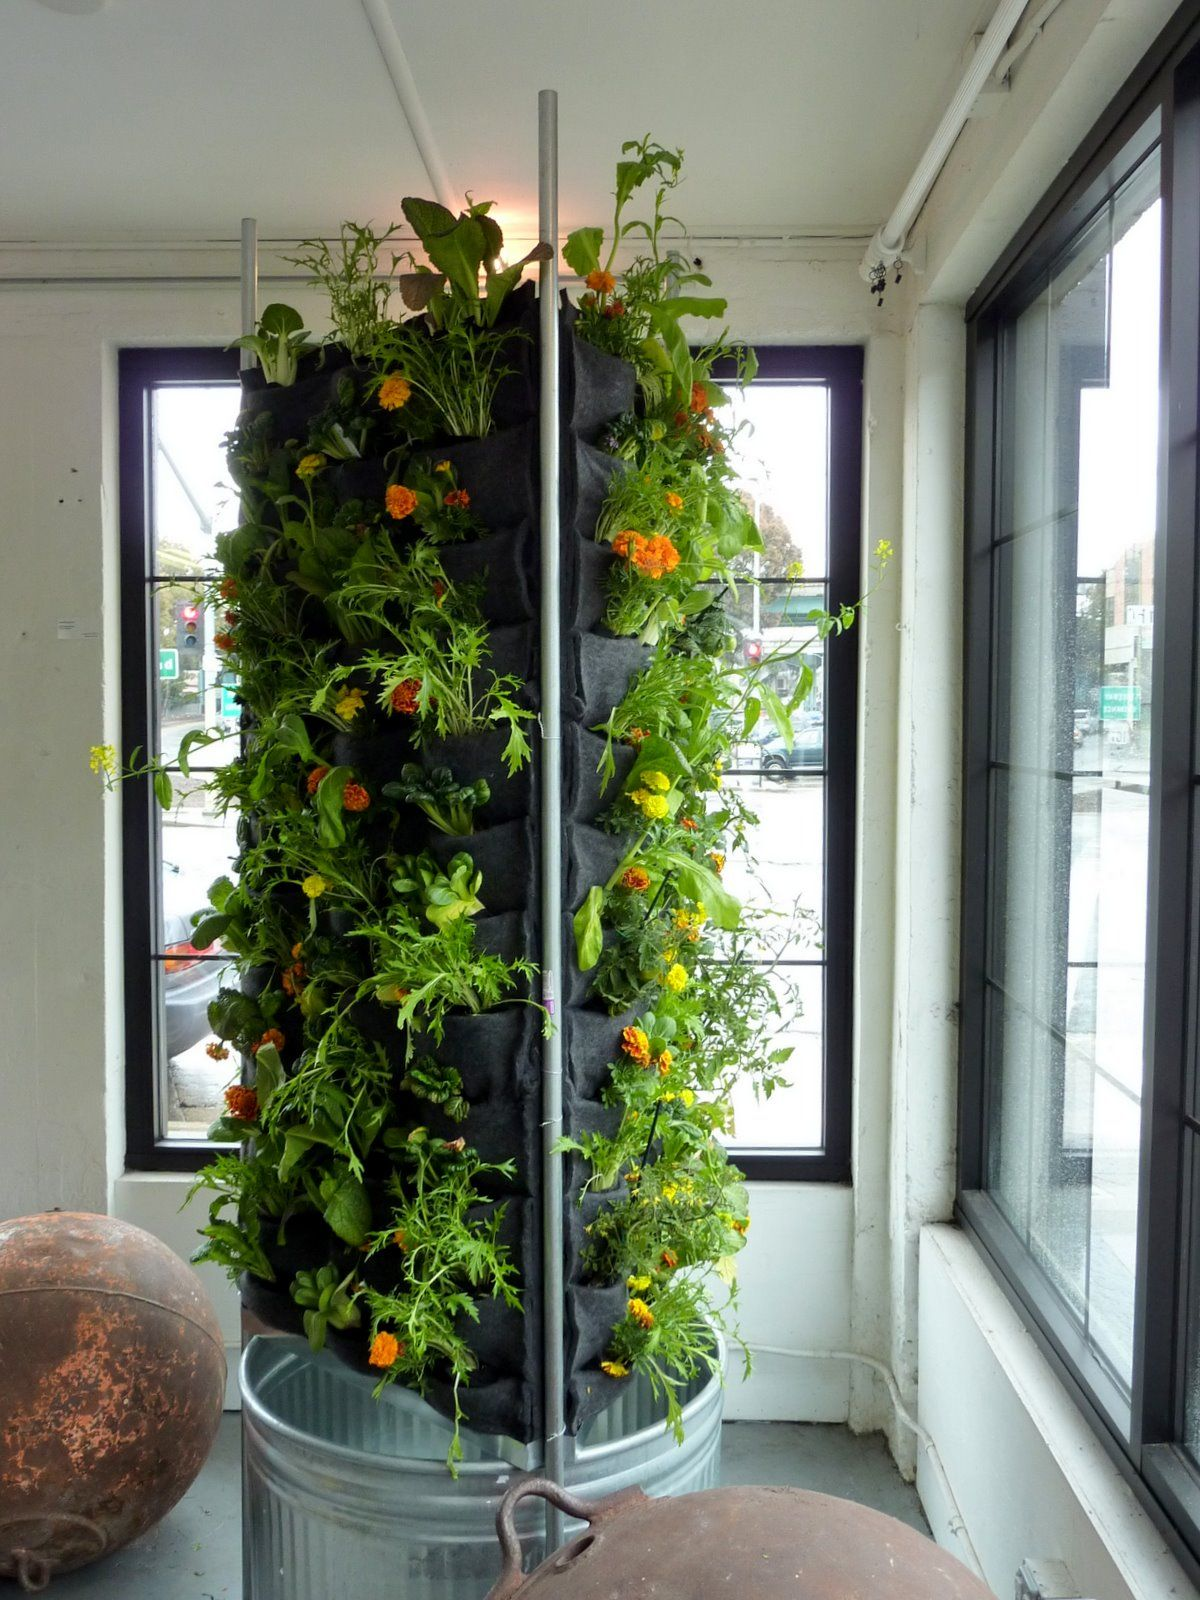 Indoor Vegetable Garden Ideas recycled plastic bottles awesome vertical vegetable garden Find This Pin And More On Gardening Ideas